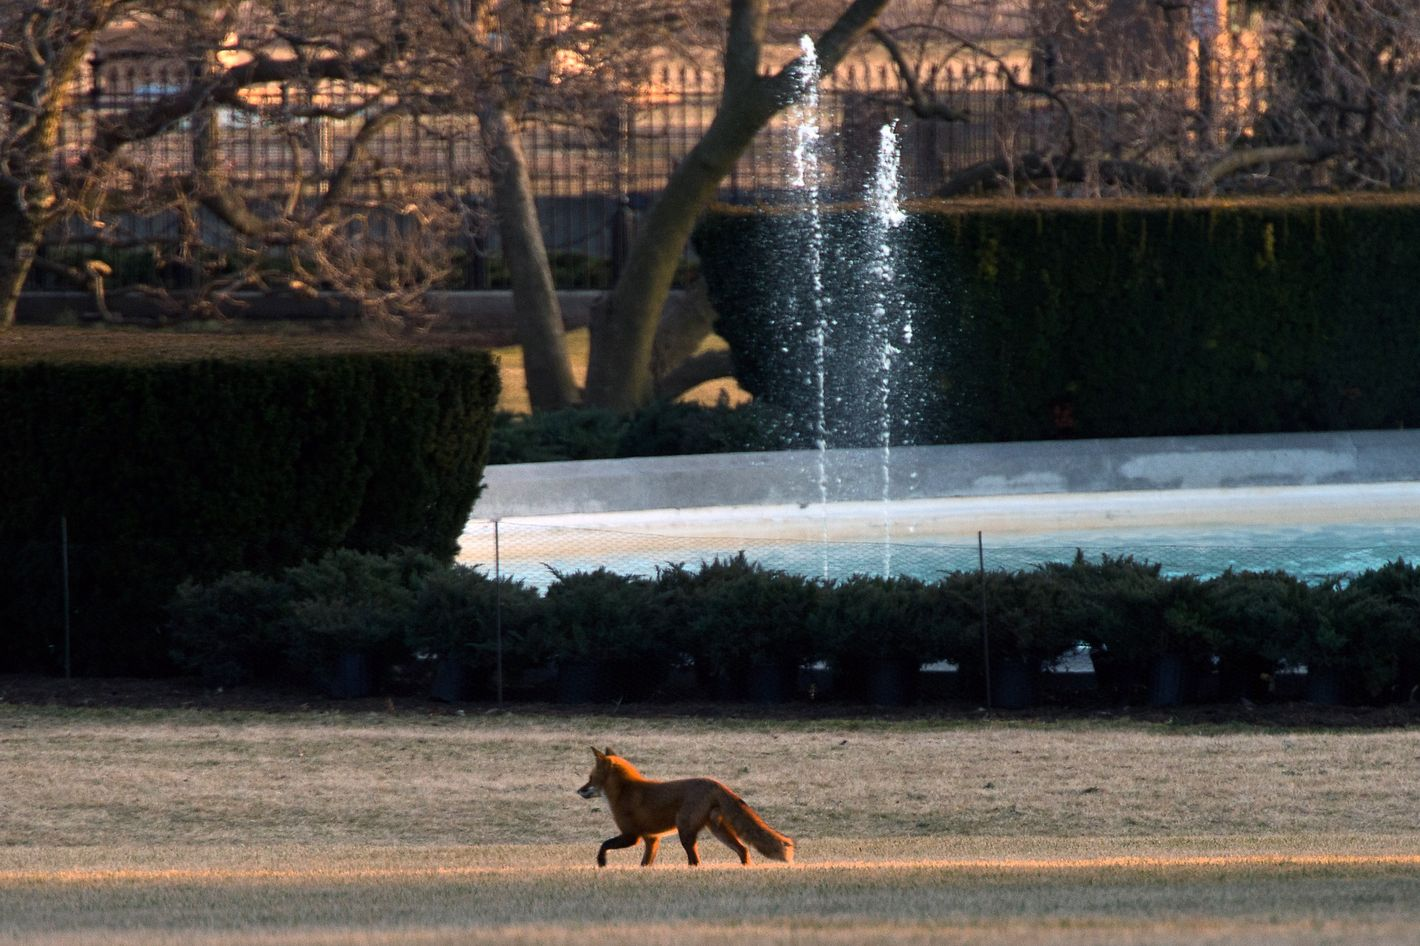 A fox runs across the South Lawn of the White House in Washington on February 7, 2014 prior to the return of US President Barack Obama from Lansing, Michigan.